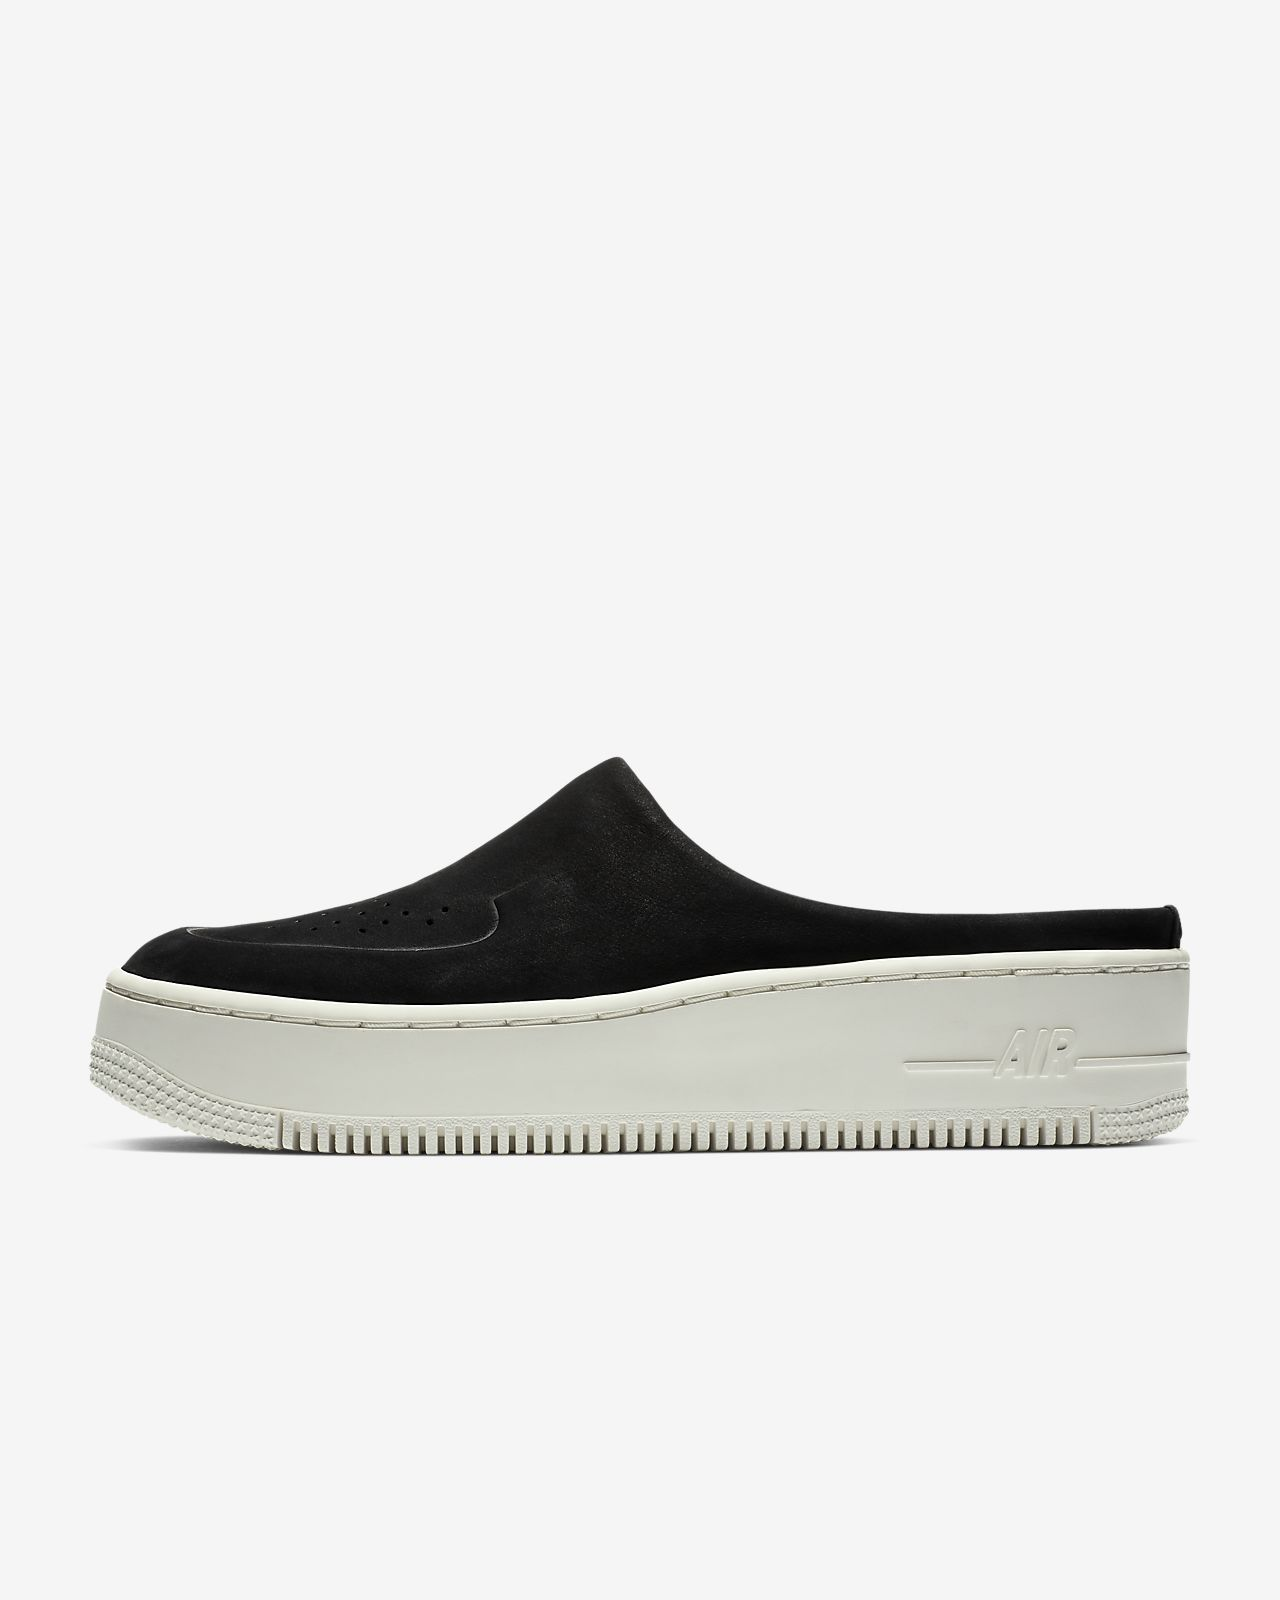 Nike Air Force 1 Lover XX Premium Damenschuh